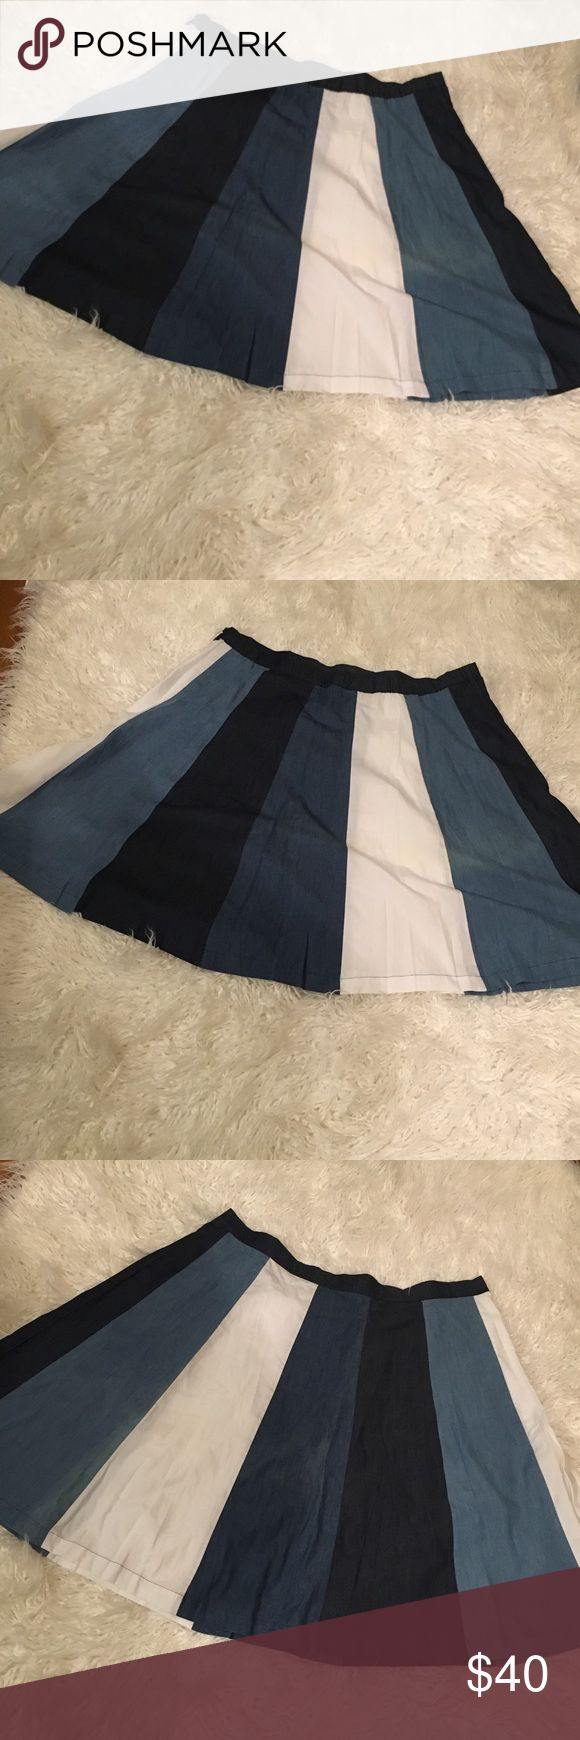 Eloquii circle denim skater skirt (PLUS SIZE) ****NEW WITH TAGS***** Plus Size circle skirt ... Denim  ....Hits above the knee length .... great with a pair of flats or knee length boots... Never worn Eloquii Skirts Circle & Skater